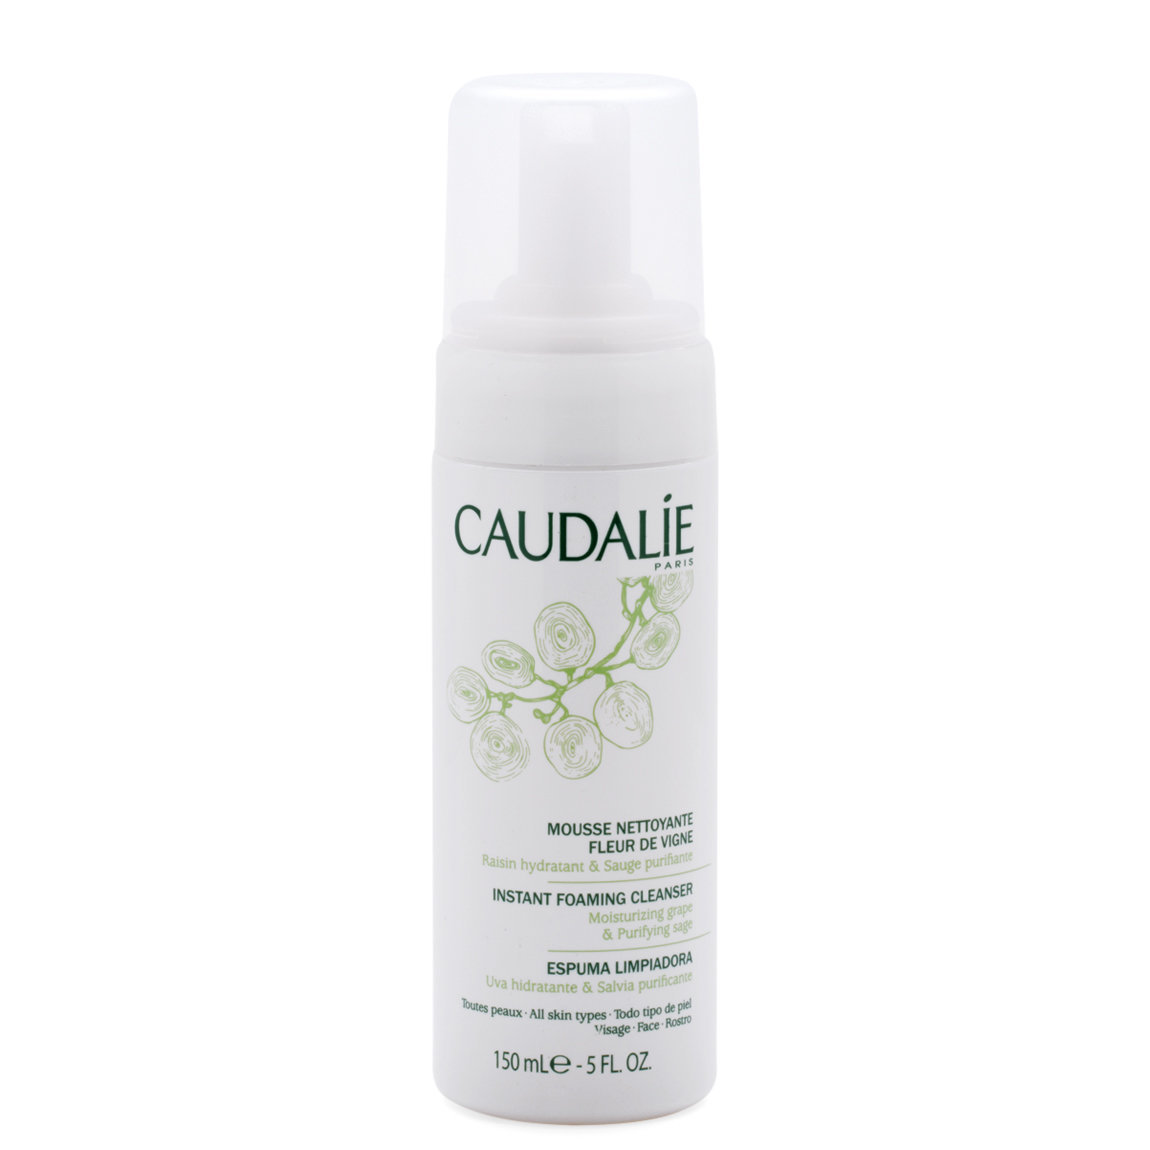 Caudalie Instant Foaming Cleanser 150 ml alternative view 1.